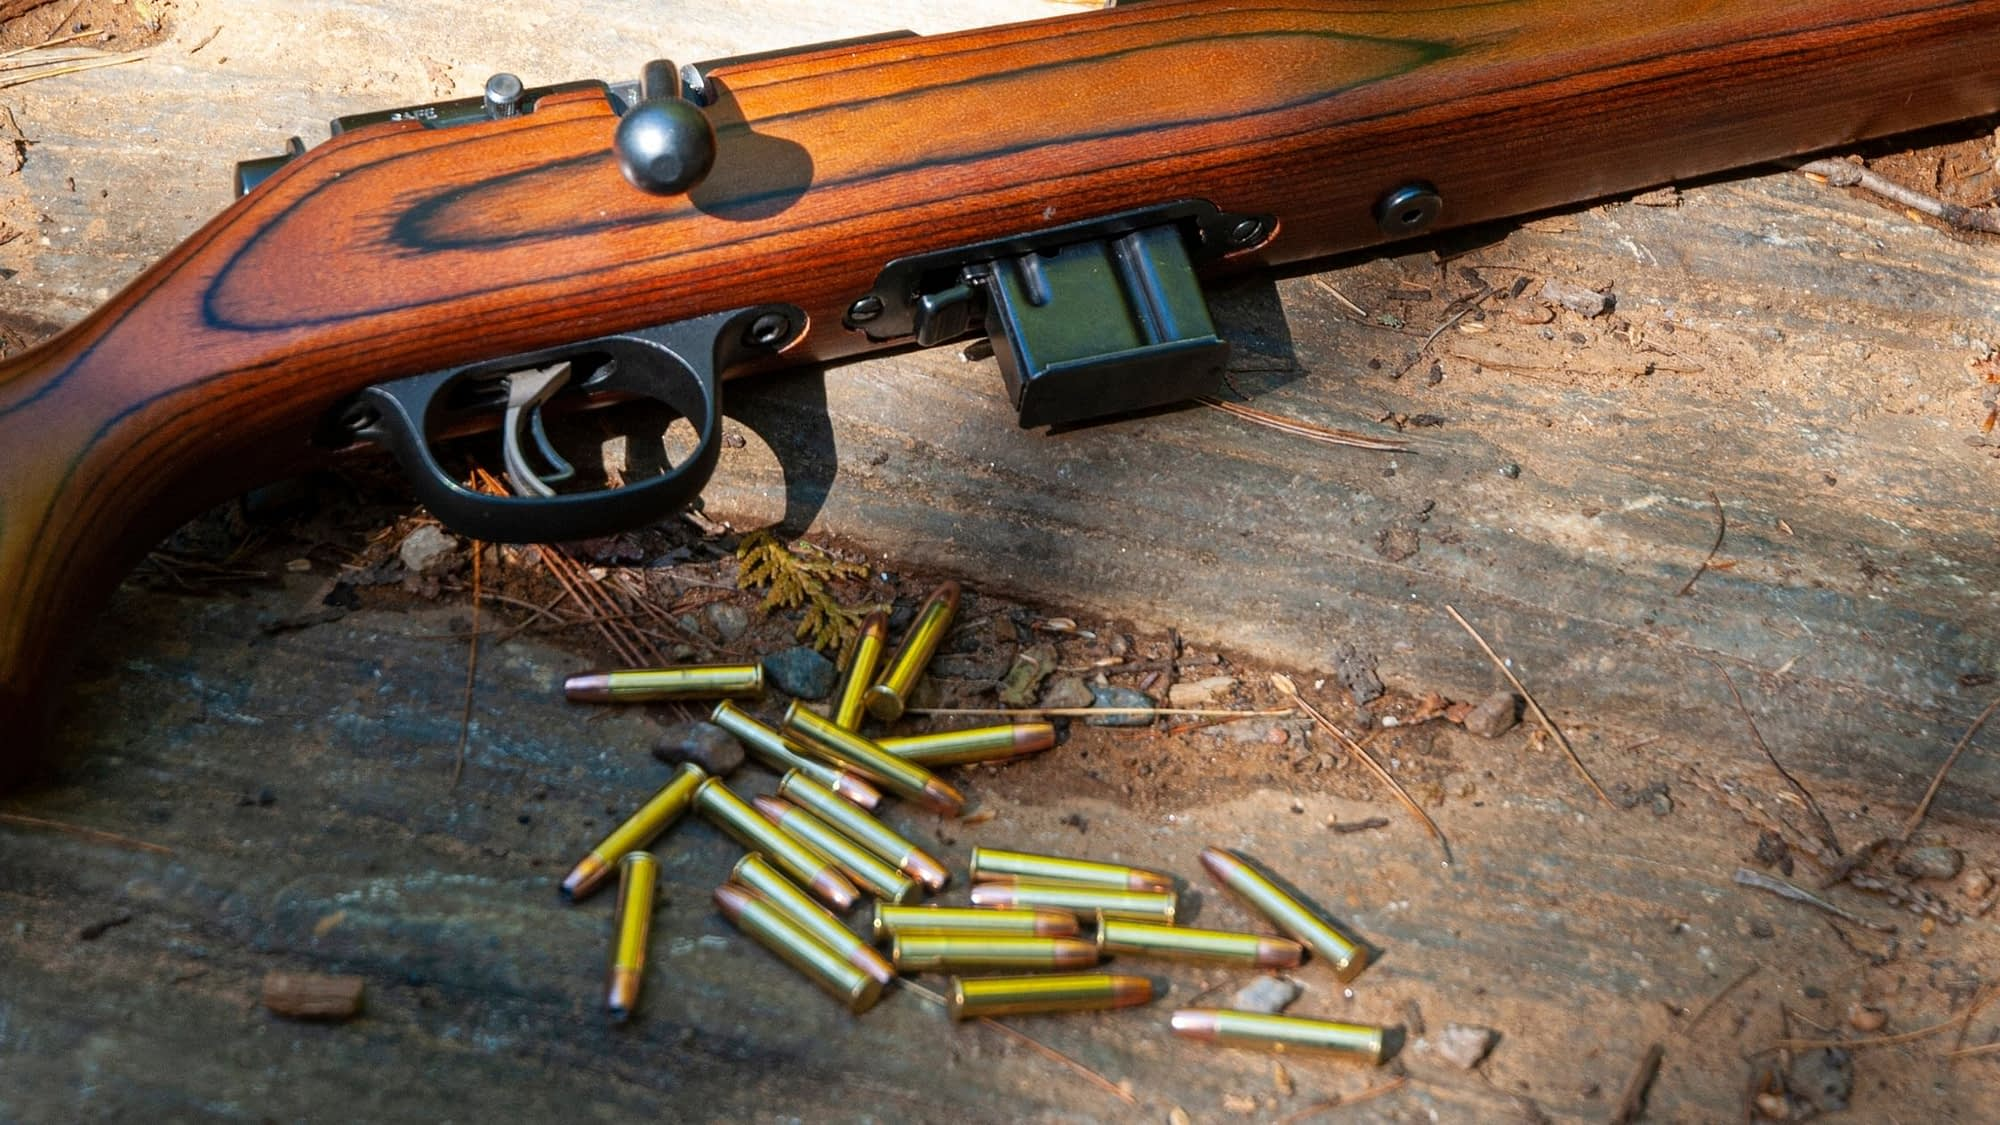 22lr hollow point vs solid for hunting